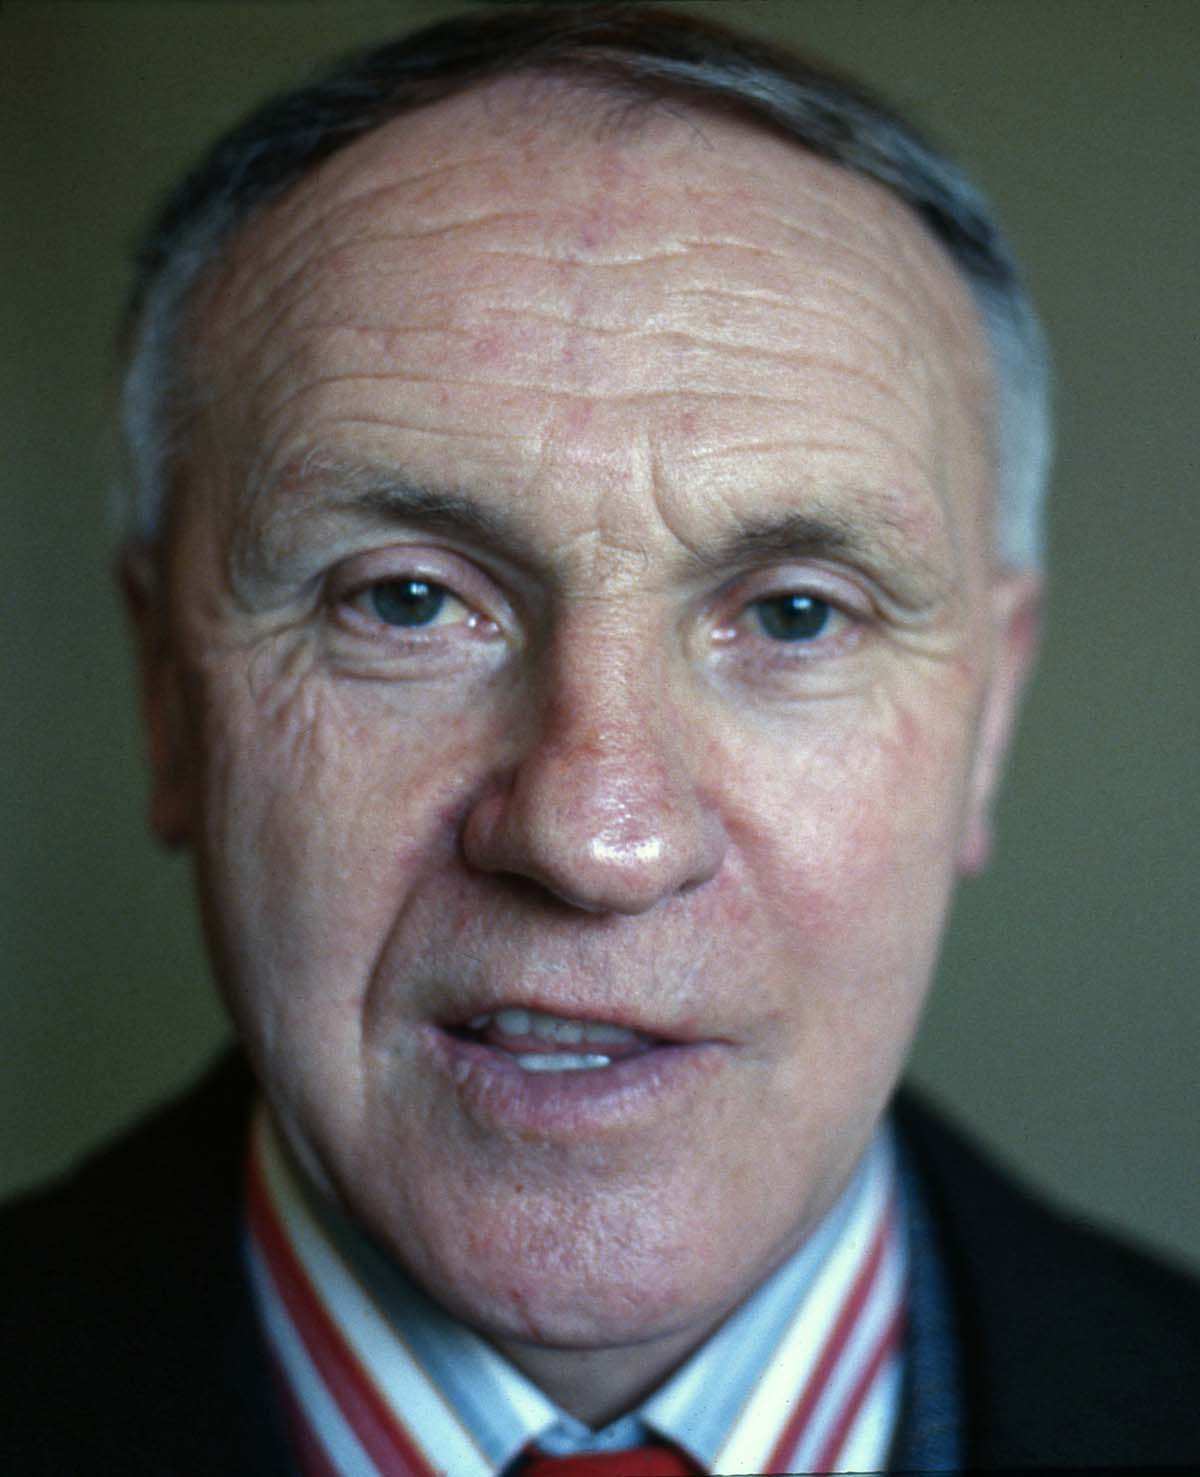 close colour portriat photograph of a man with grey hair